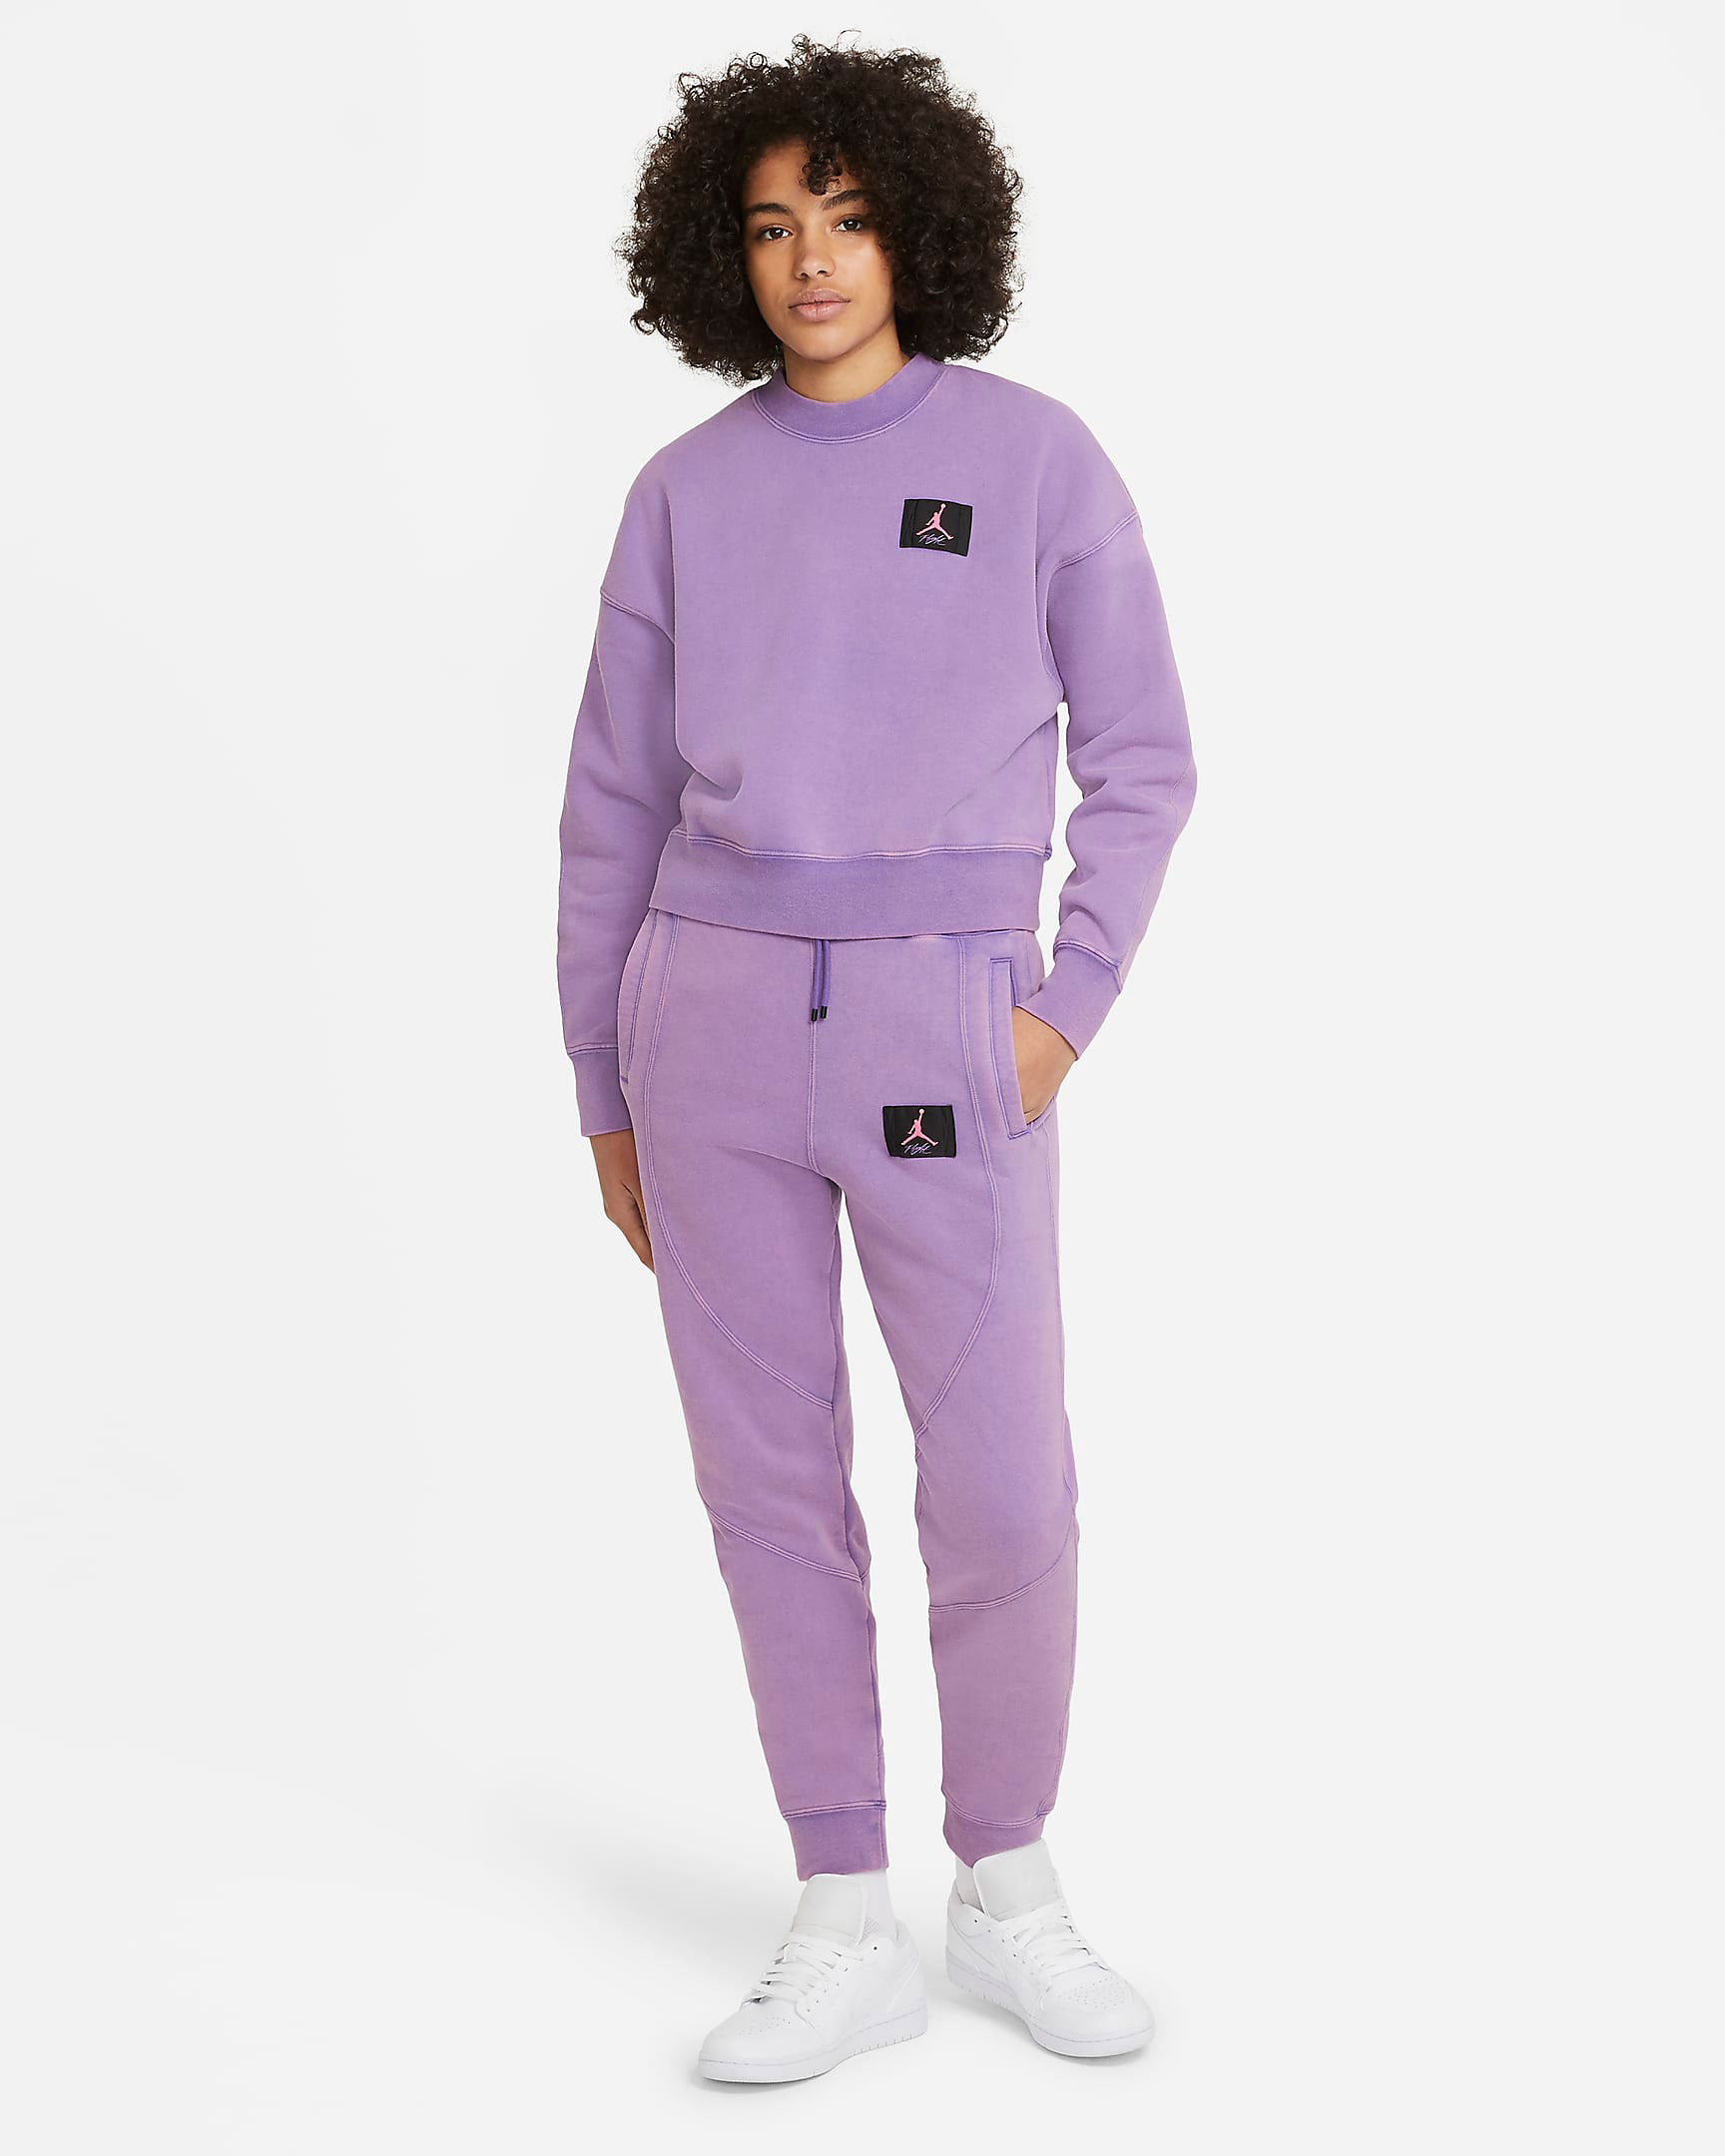 jordan-flight-womens-sweatshirt-pants-purple-pink-1